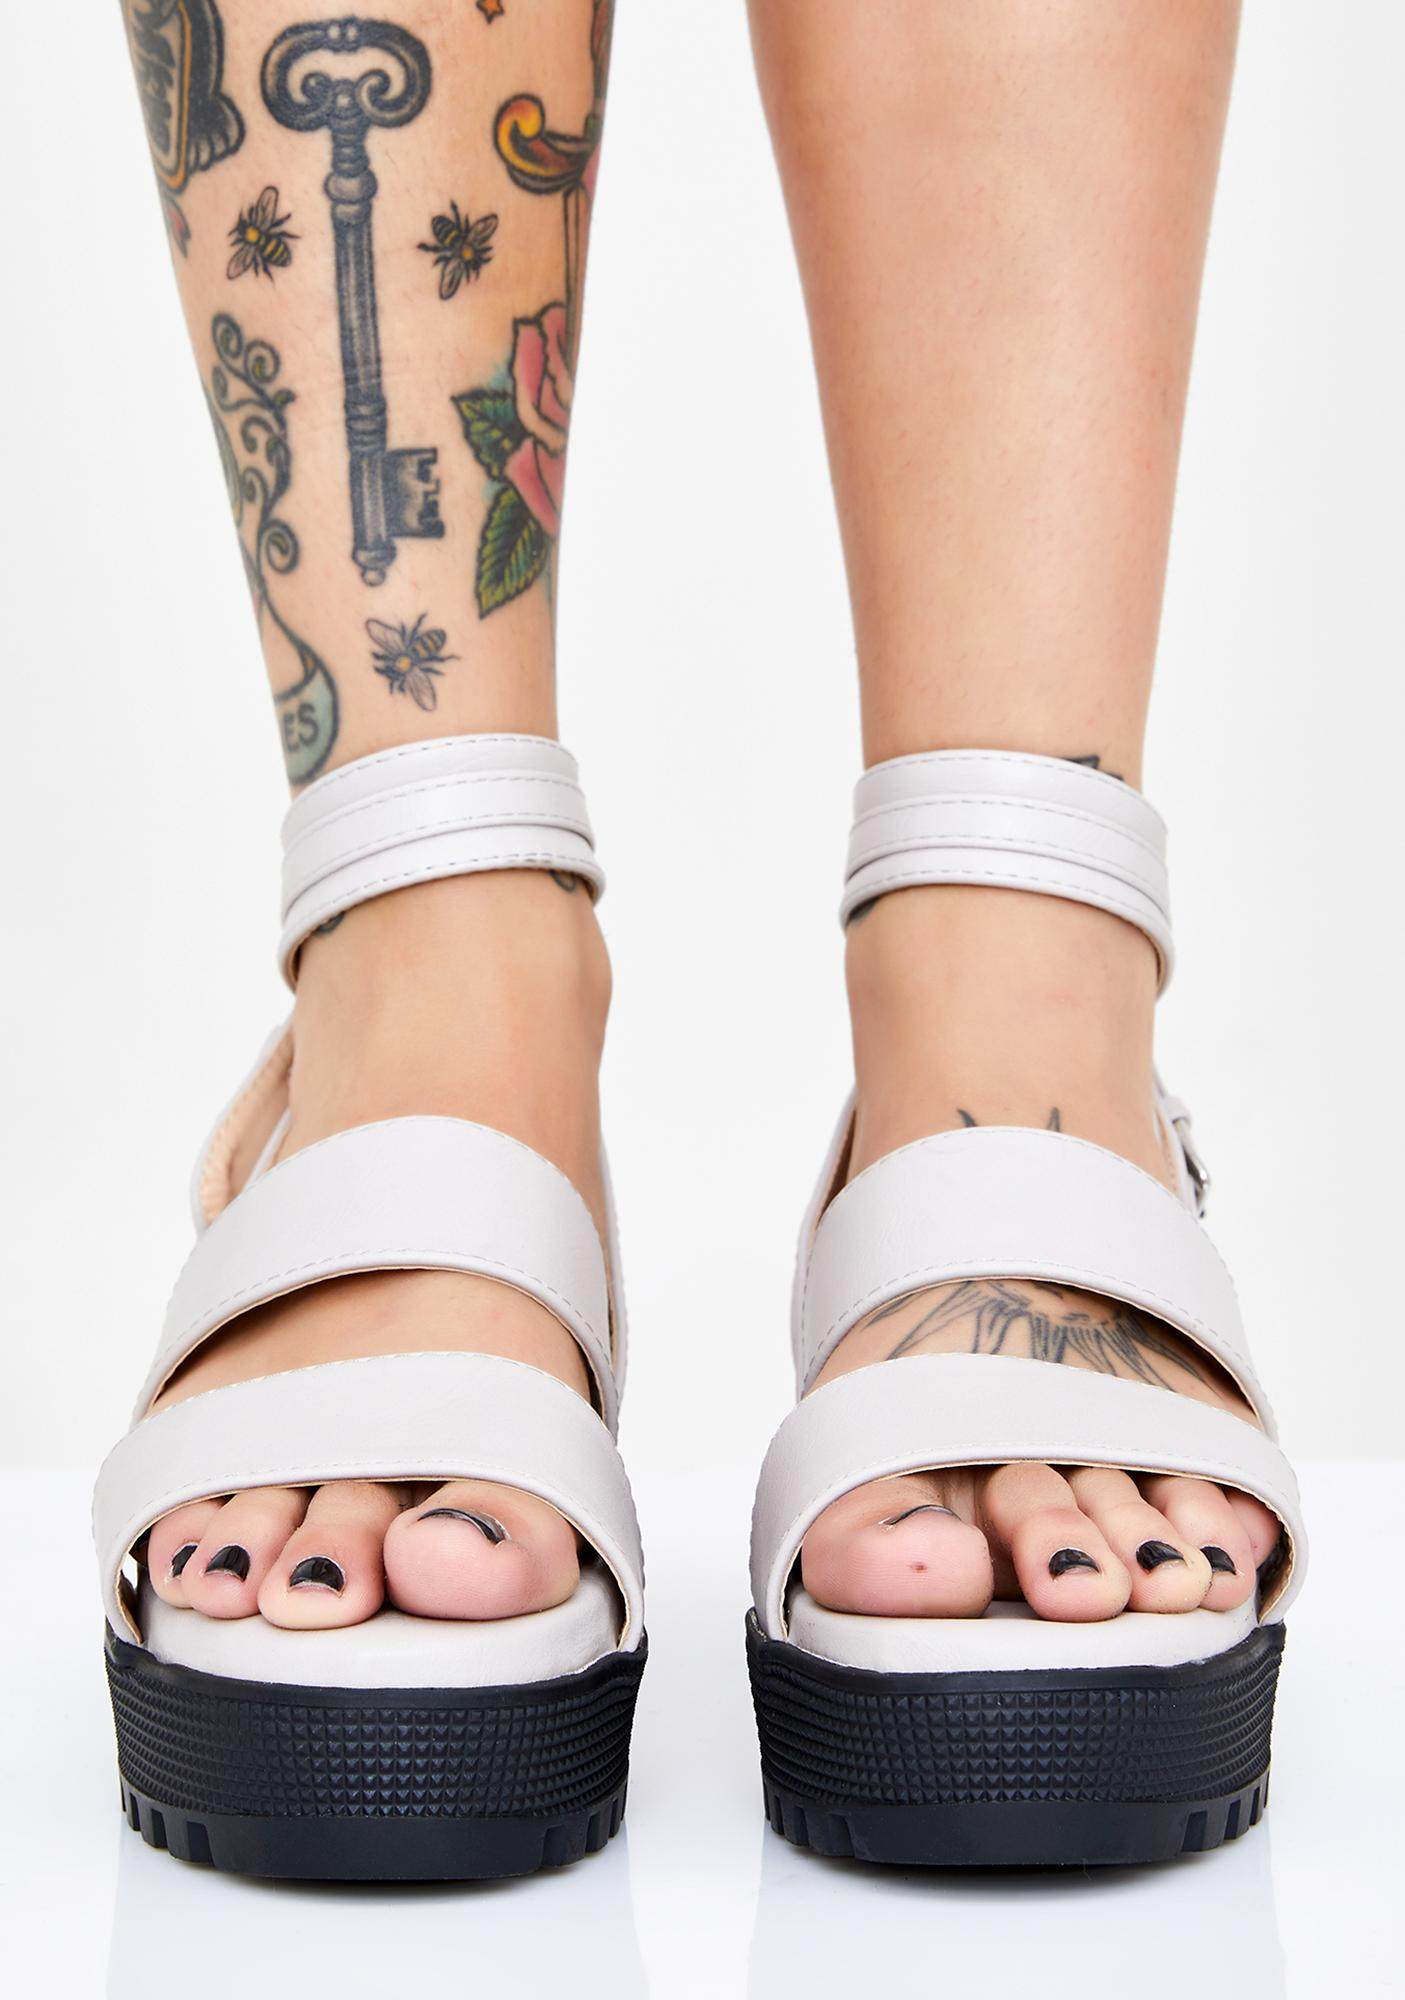 Storm Feisty Fury Platform Sandals